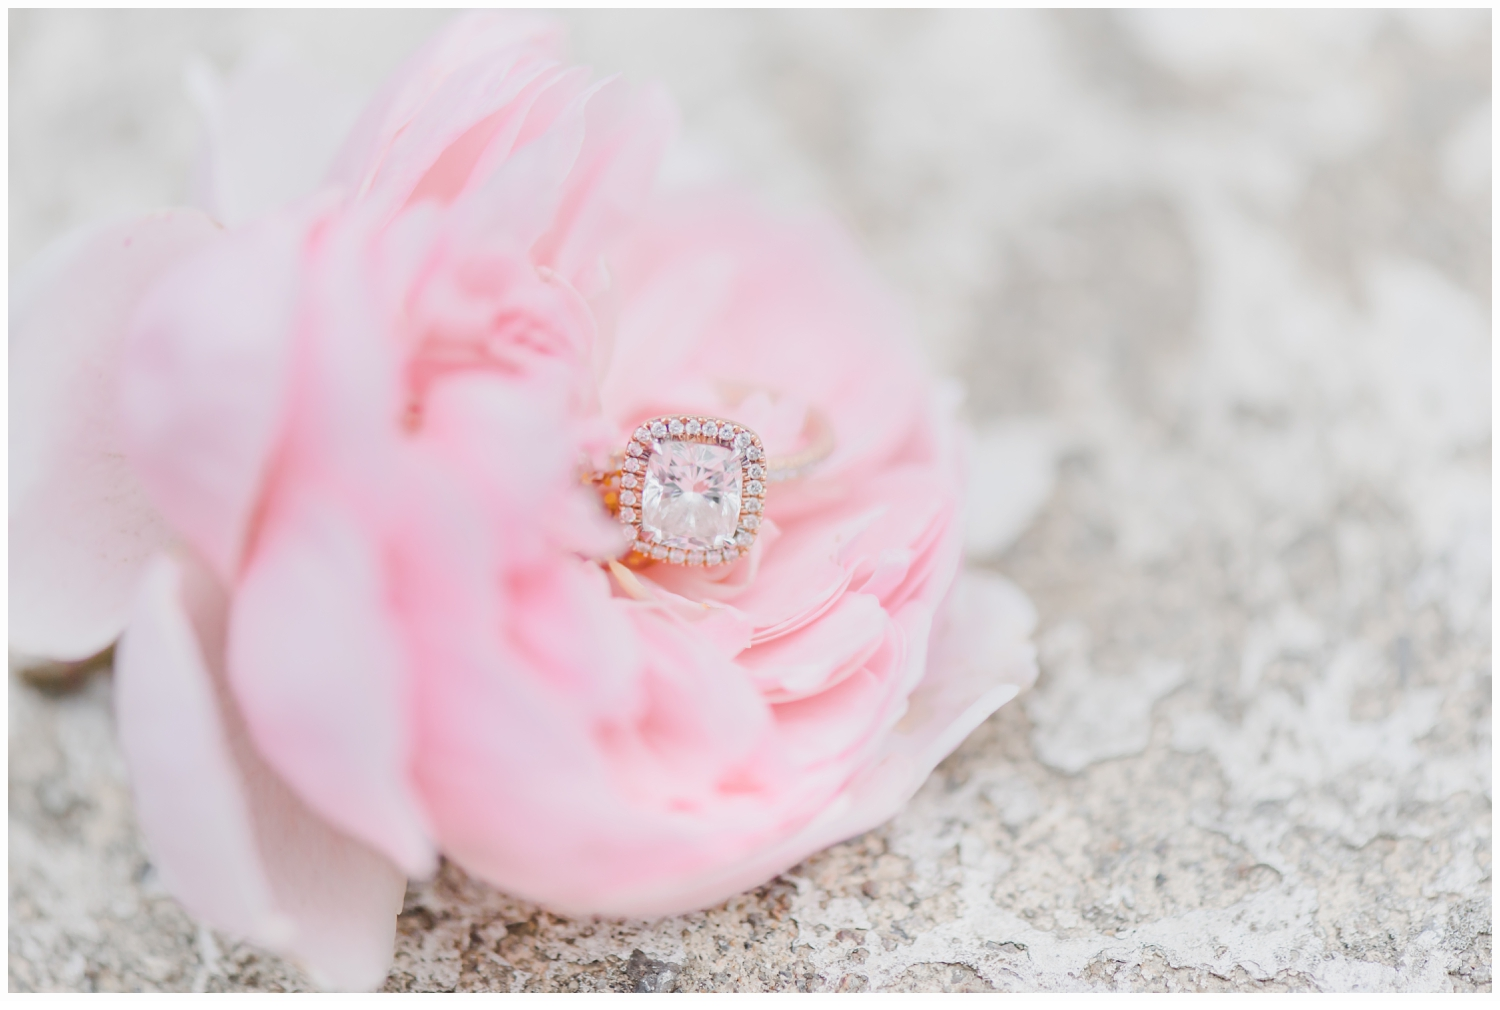 a rose with engagement ring